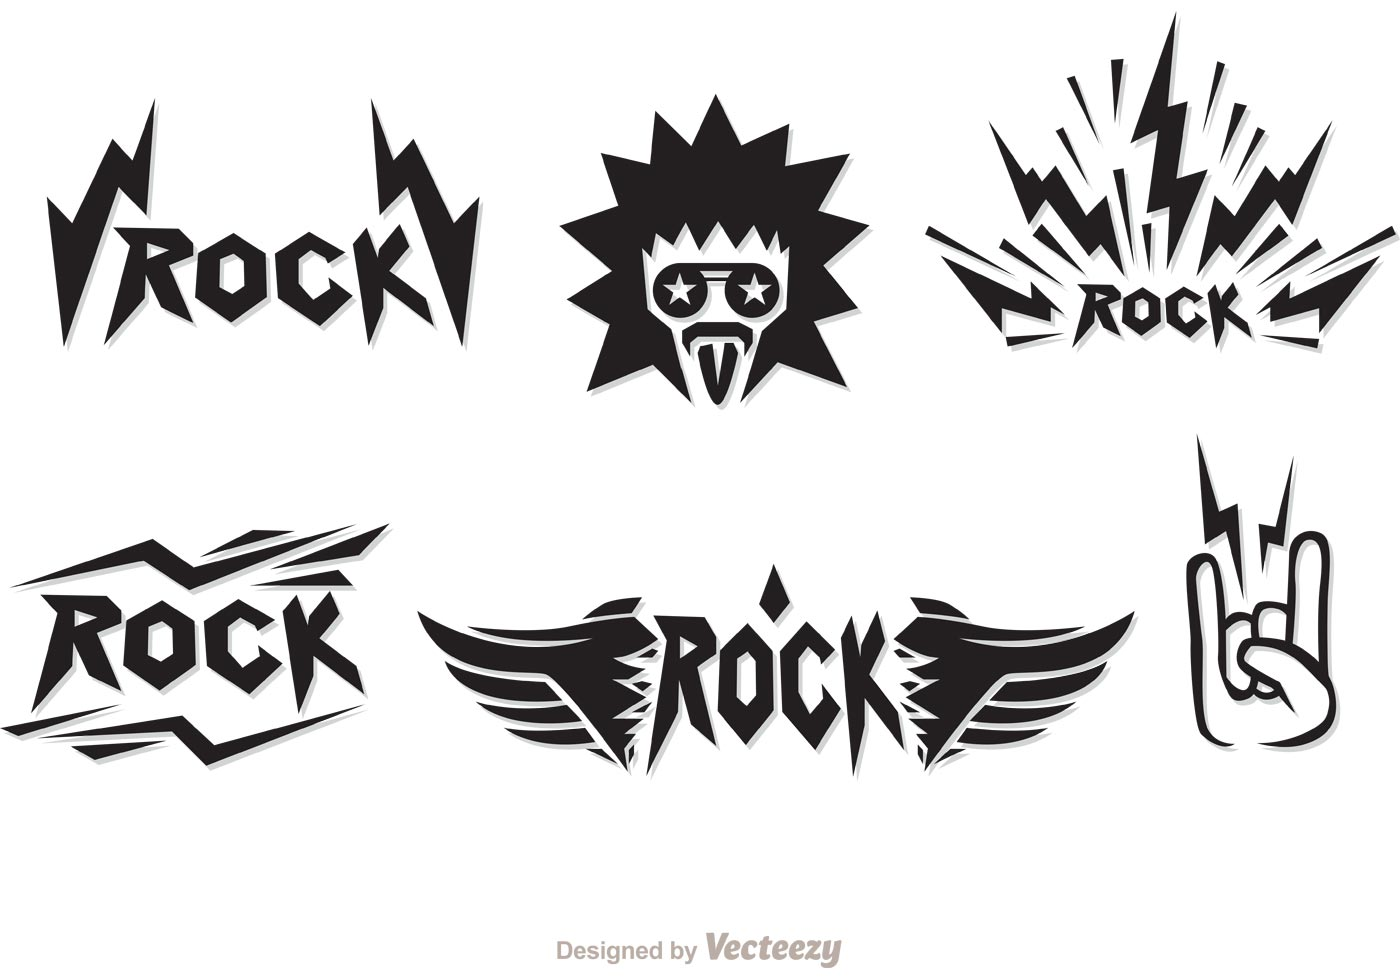 Rock Music Symbols Vectors Download Free Vector Art Stock